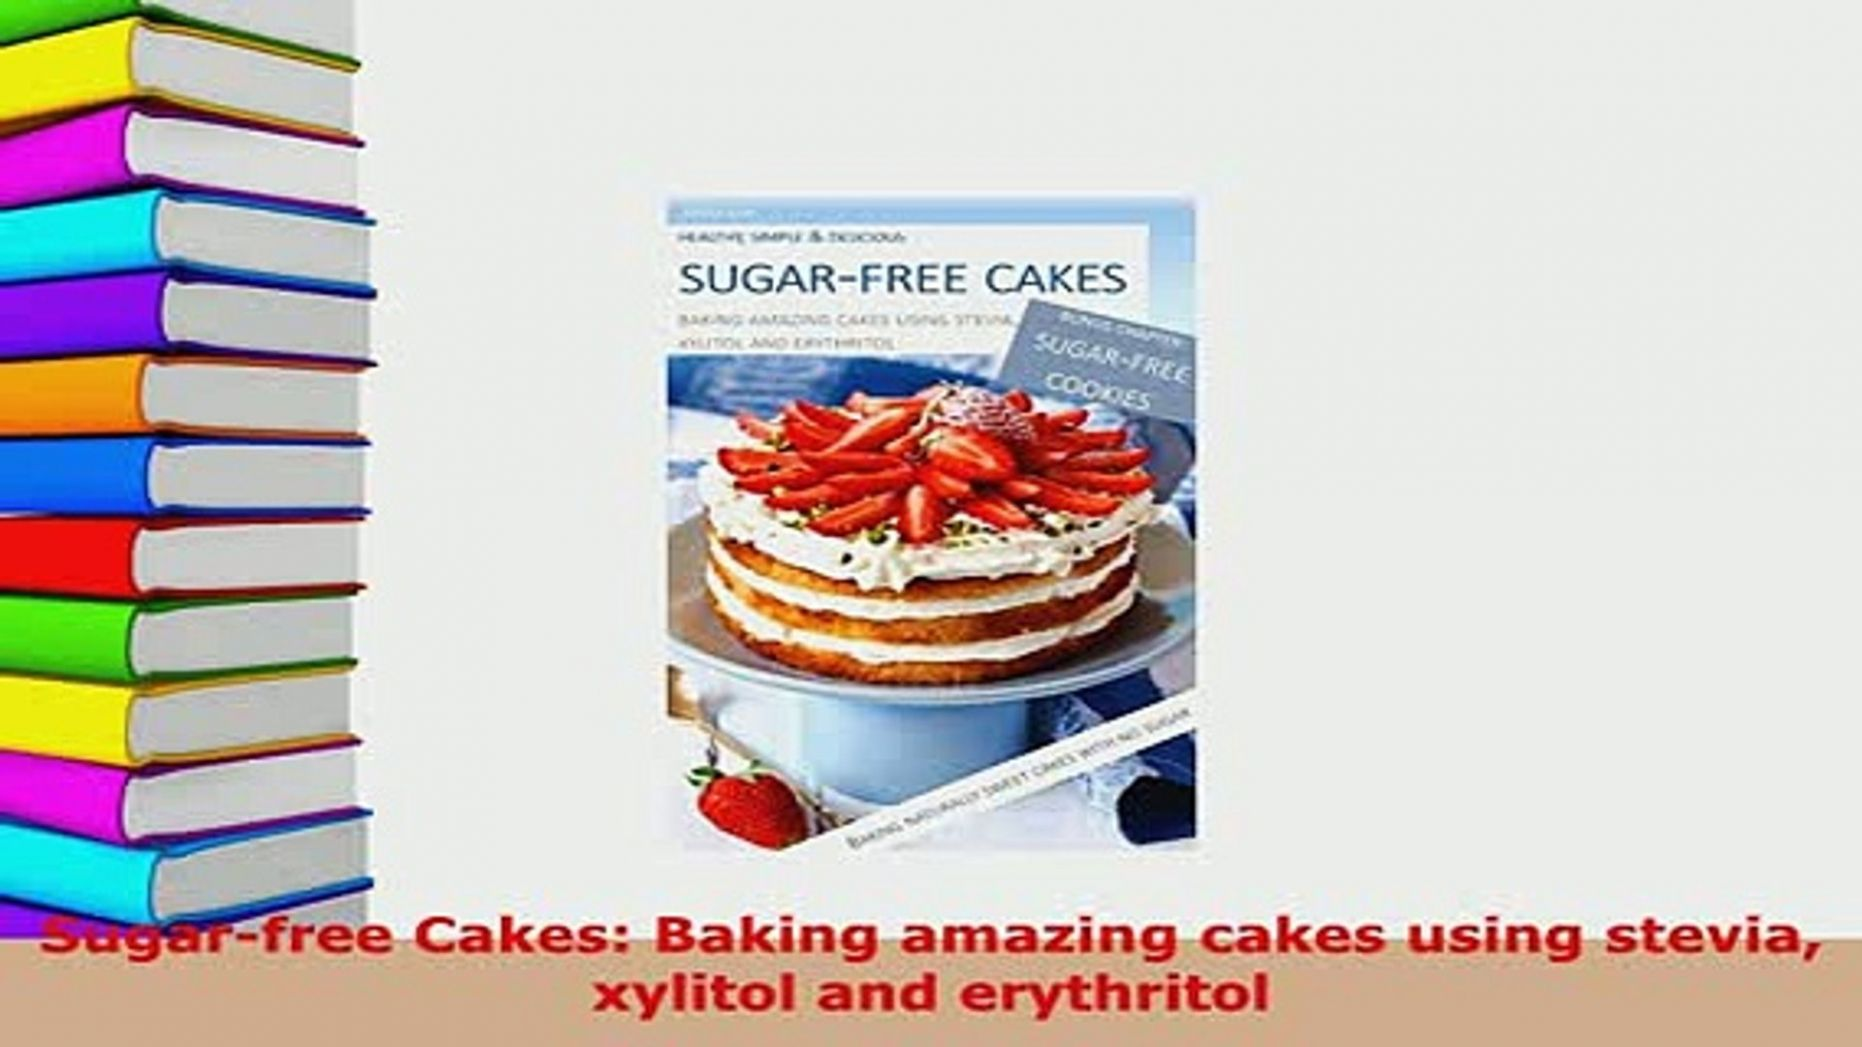 PDF Sugarfree Cakes Baking amazing cakes using stevia xylitol and  erythritol Read Online - Cake Recipes Made With Xylitol